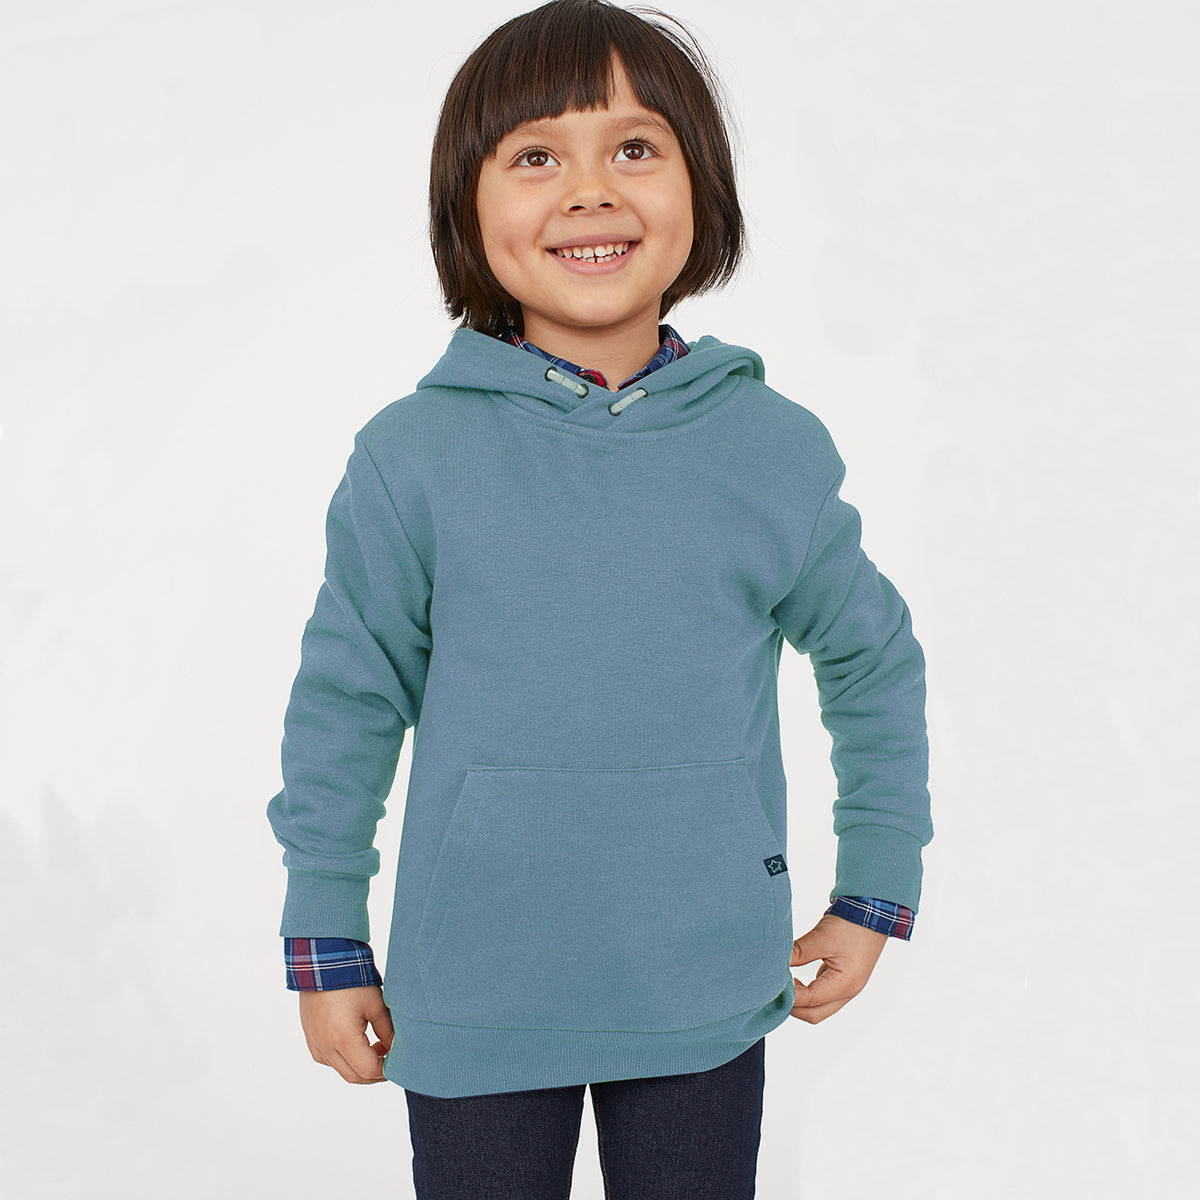 Next Fleece Pullover Hoodie For Kids-Slate Blue-NA7754